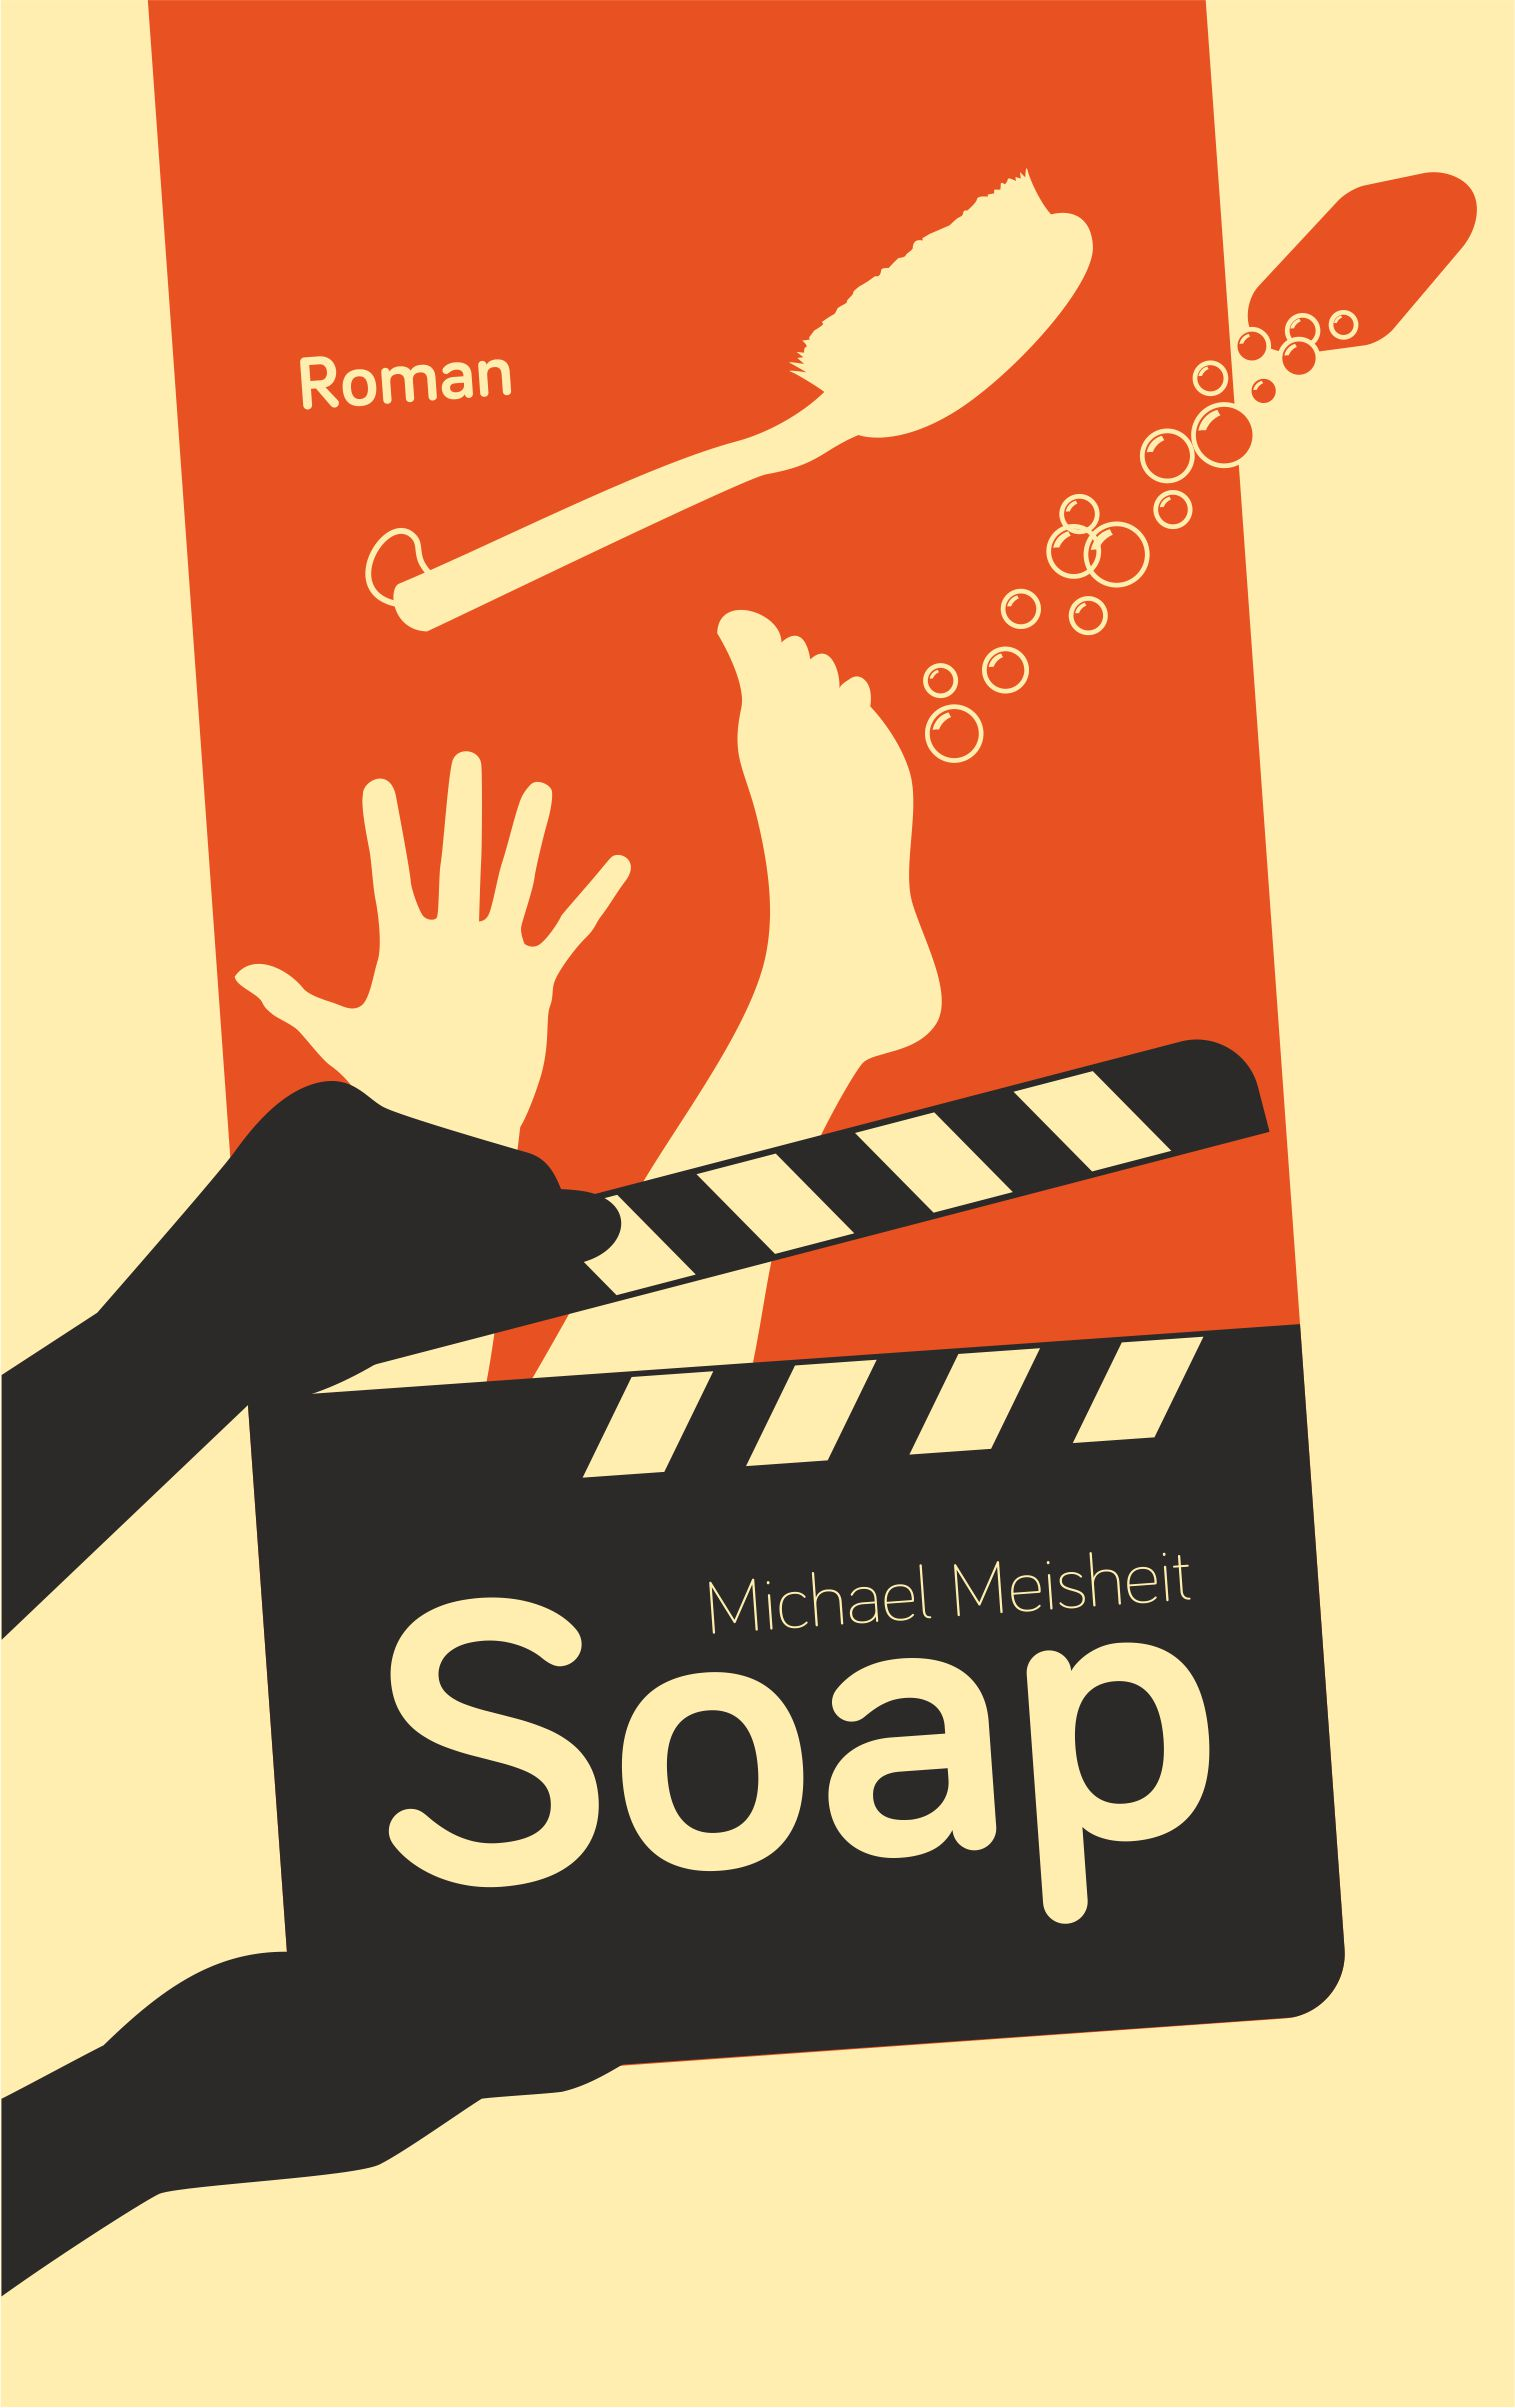 Michael Meisheit-Soap